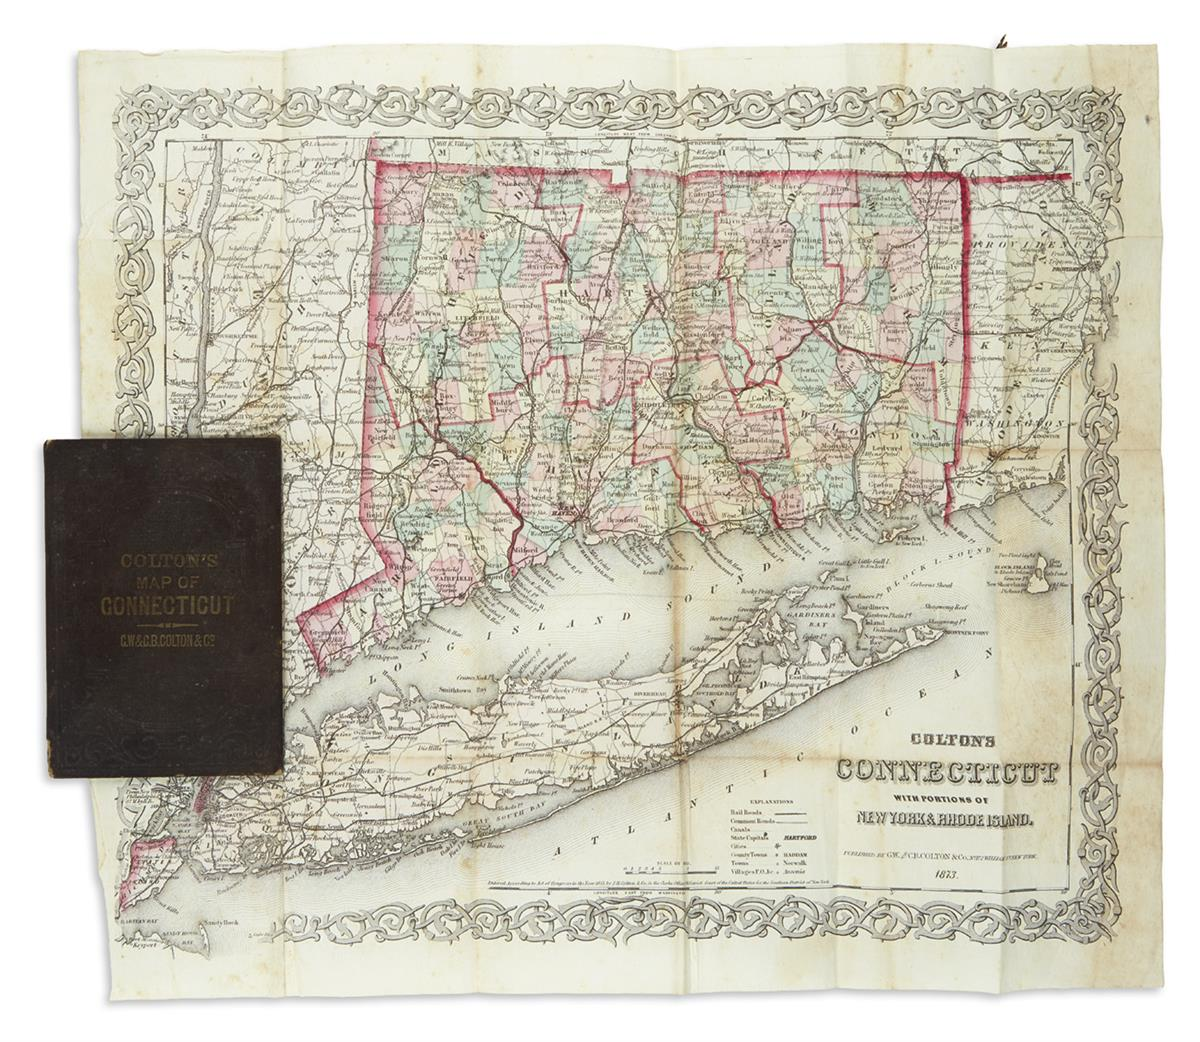 COLTON-GW--CB-Coltons-Railroad--Township-Map-of-the-State-of